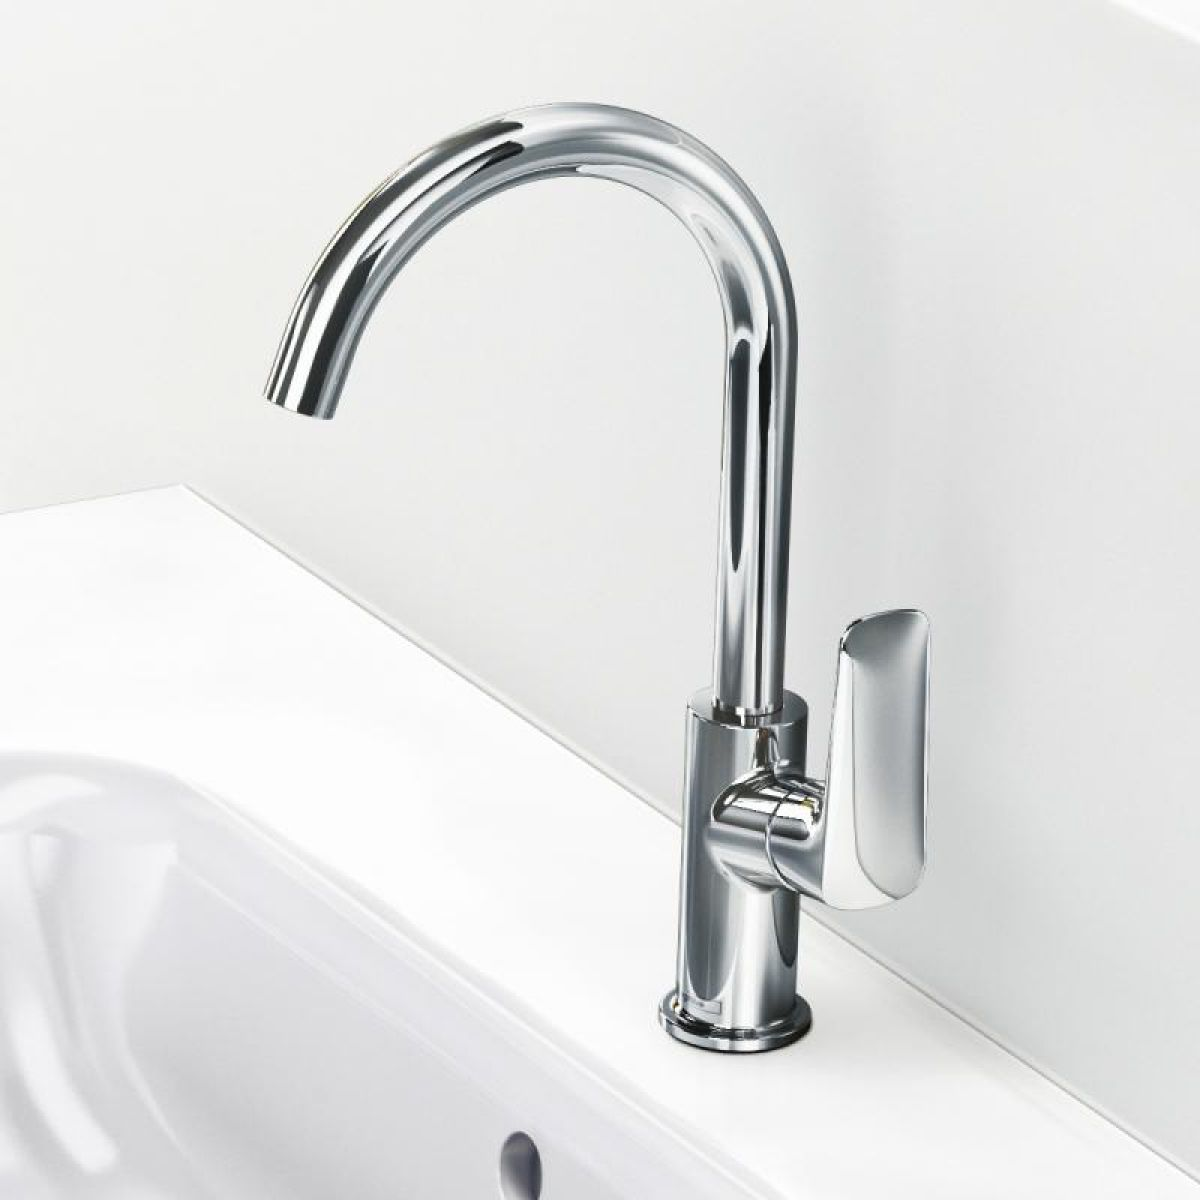 Hansgrohe Logis 210 Basin Mixer With Swivel Spout